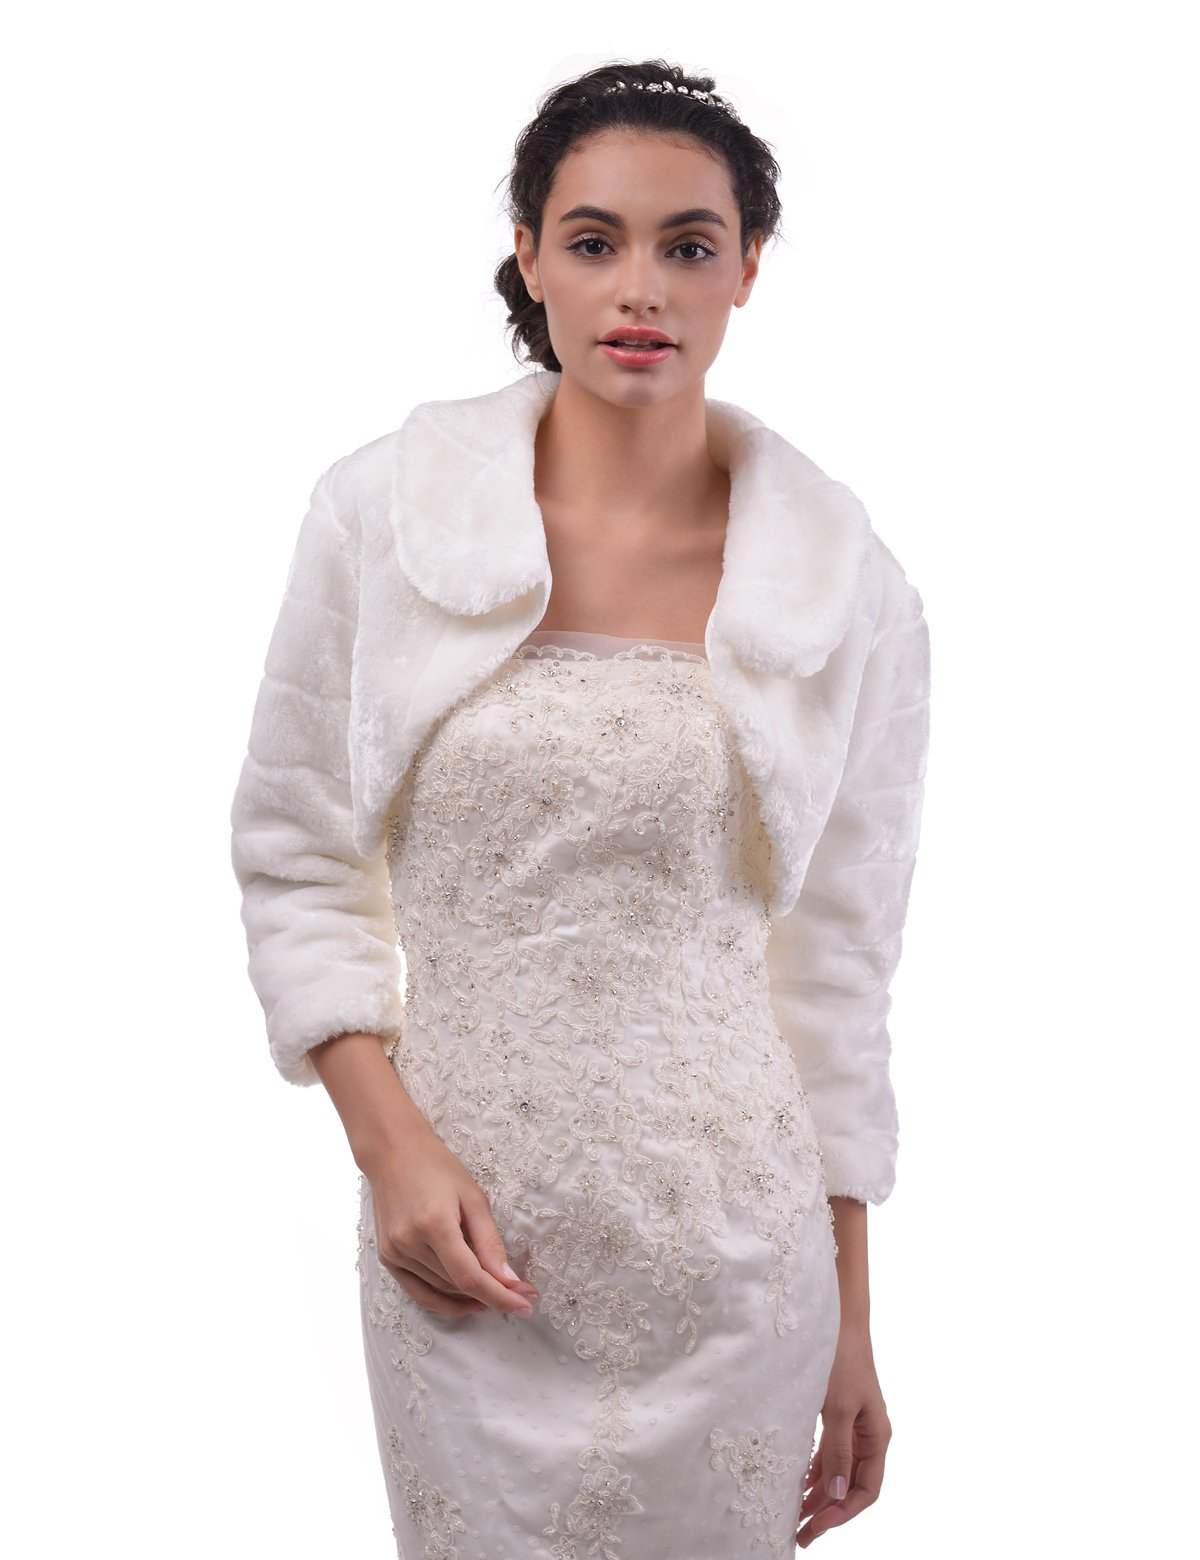 Remedios Ivory Long Sleeves Faux Fur Bridal Wrap Wedding Party Dress Bolero Jacket, M